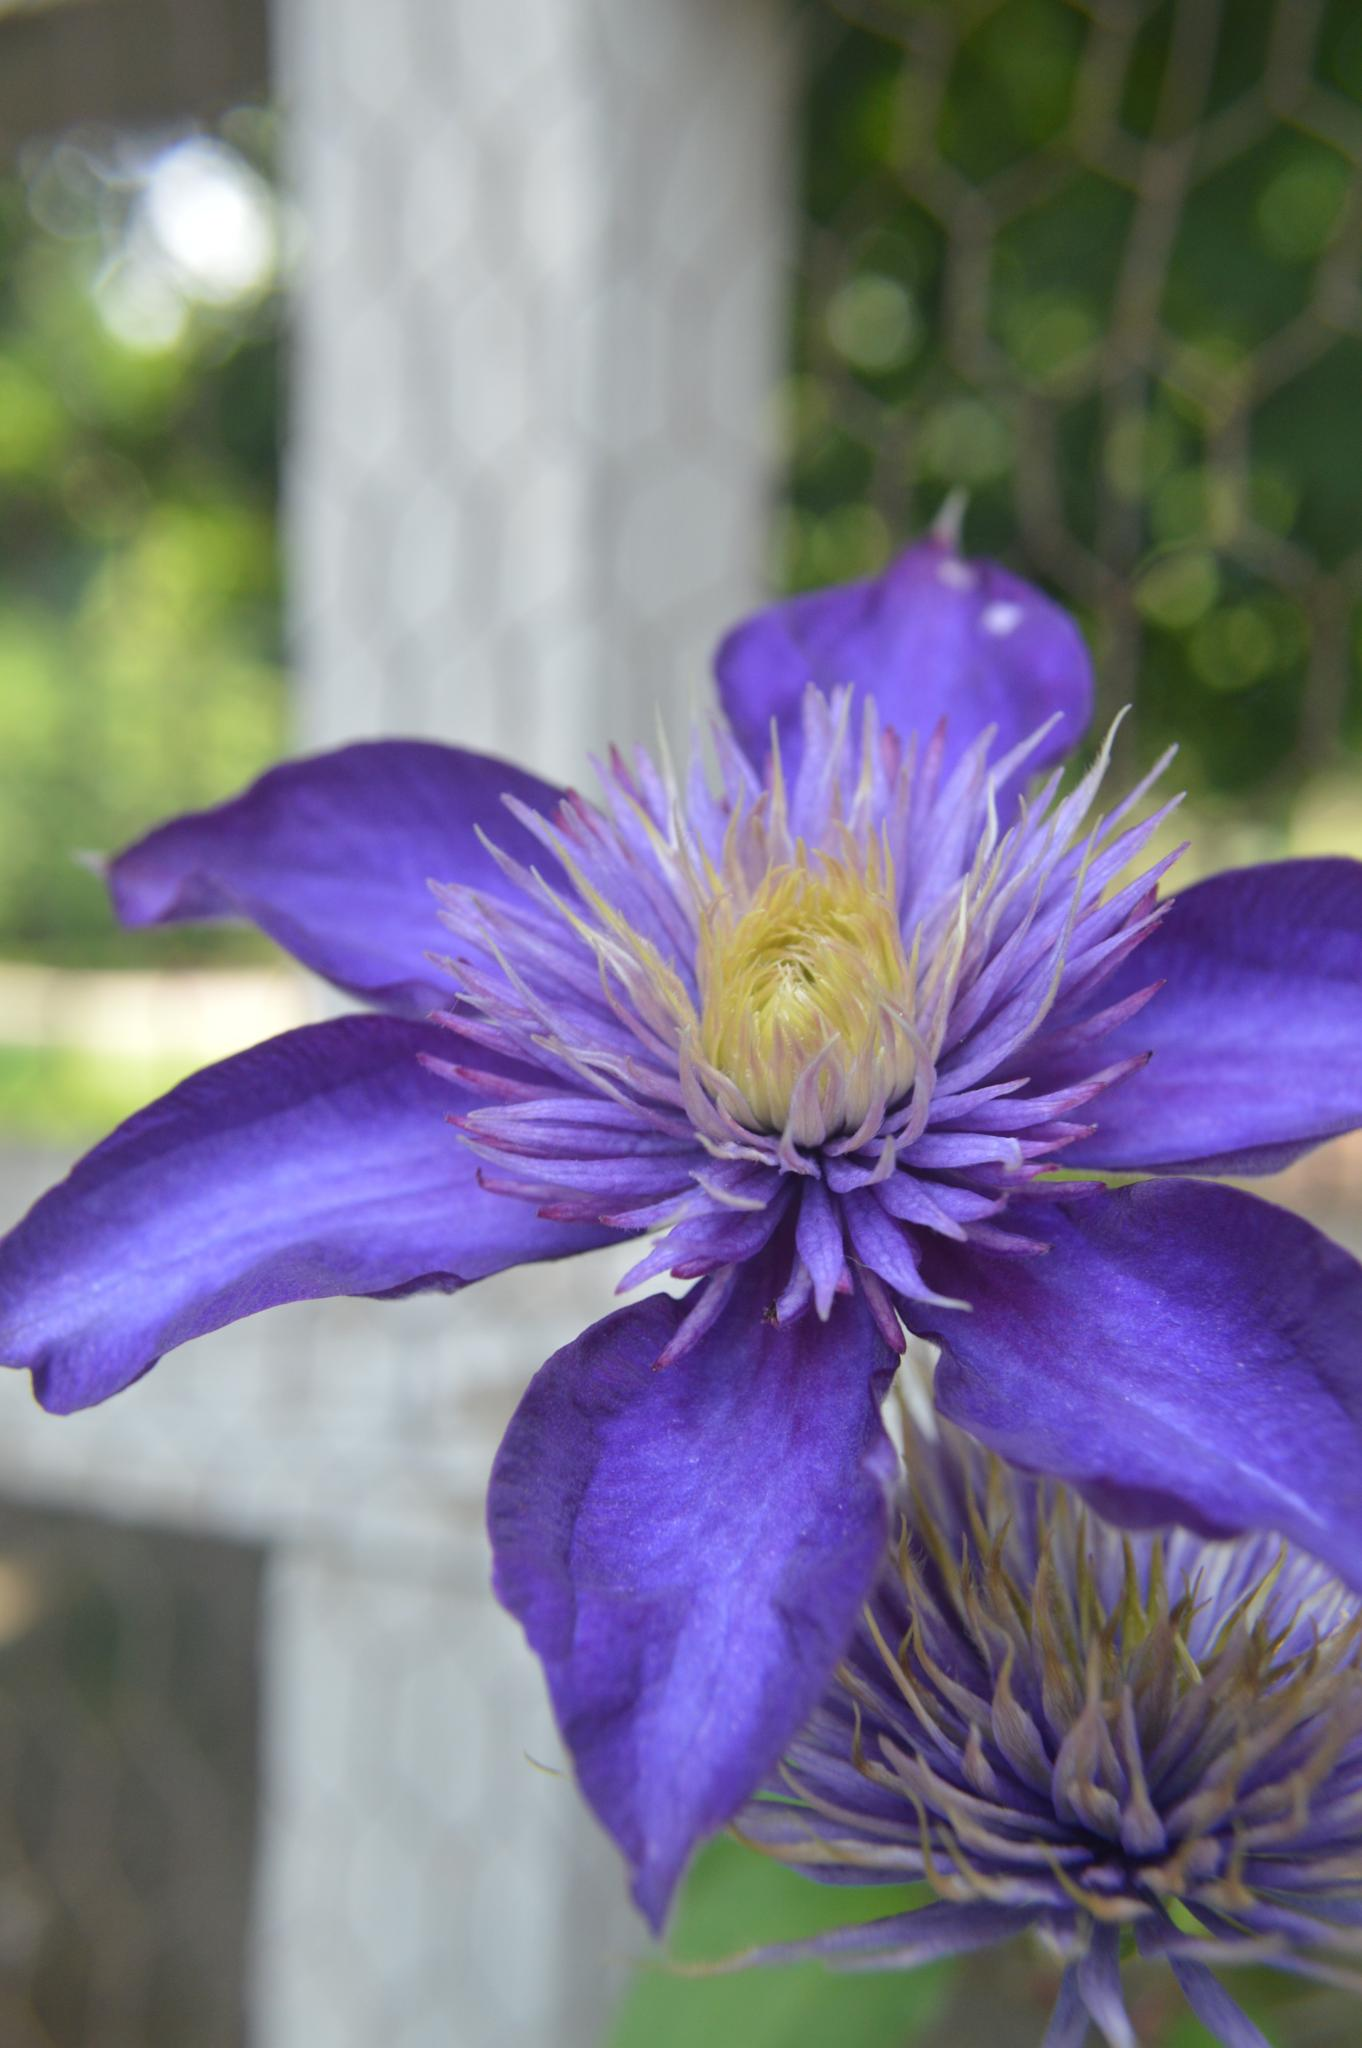 Another Purple Clematis by CLCampbell